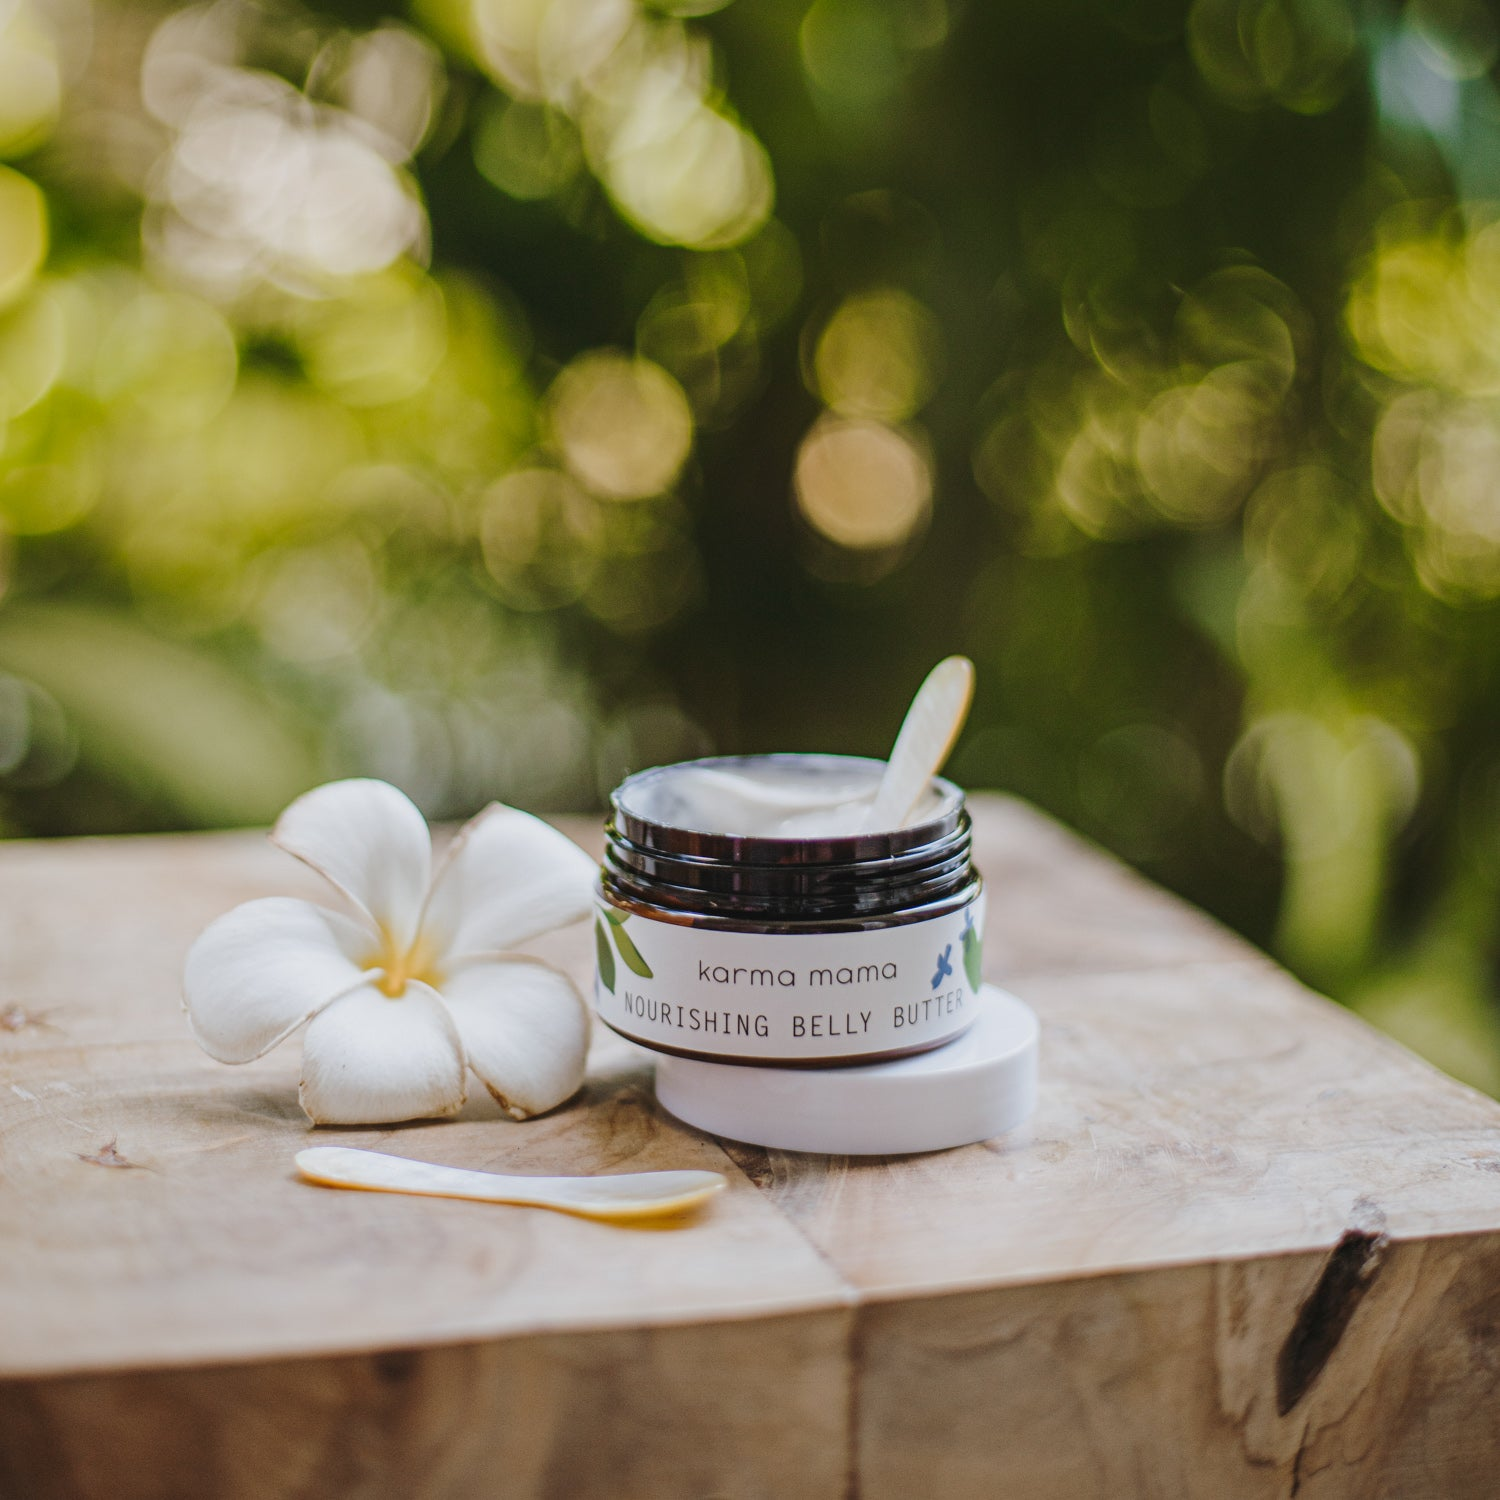 Nourishing Belly Butter